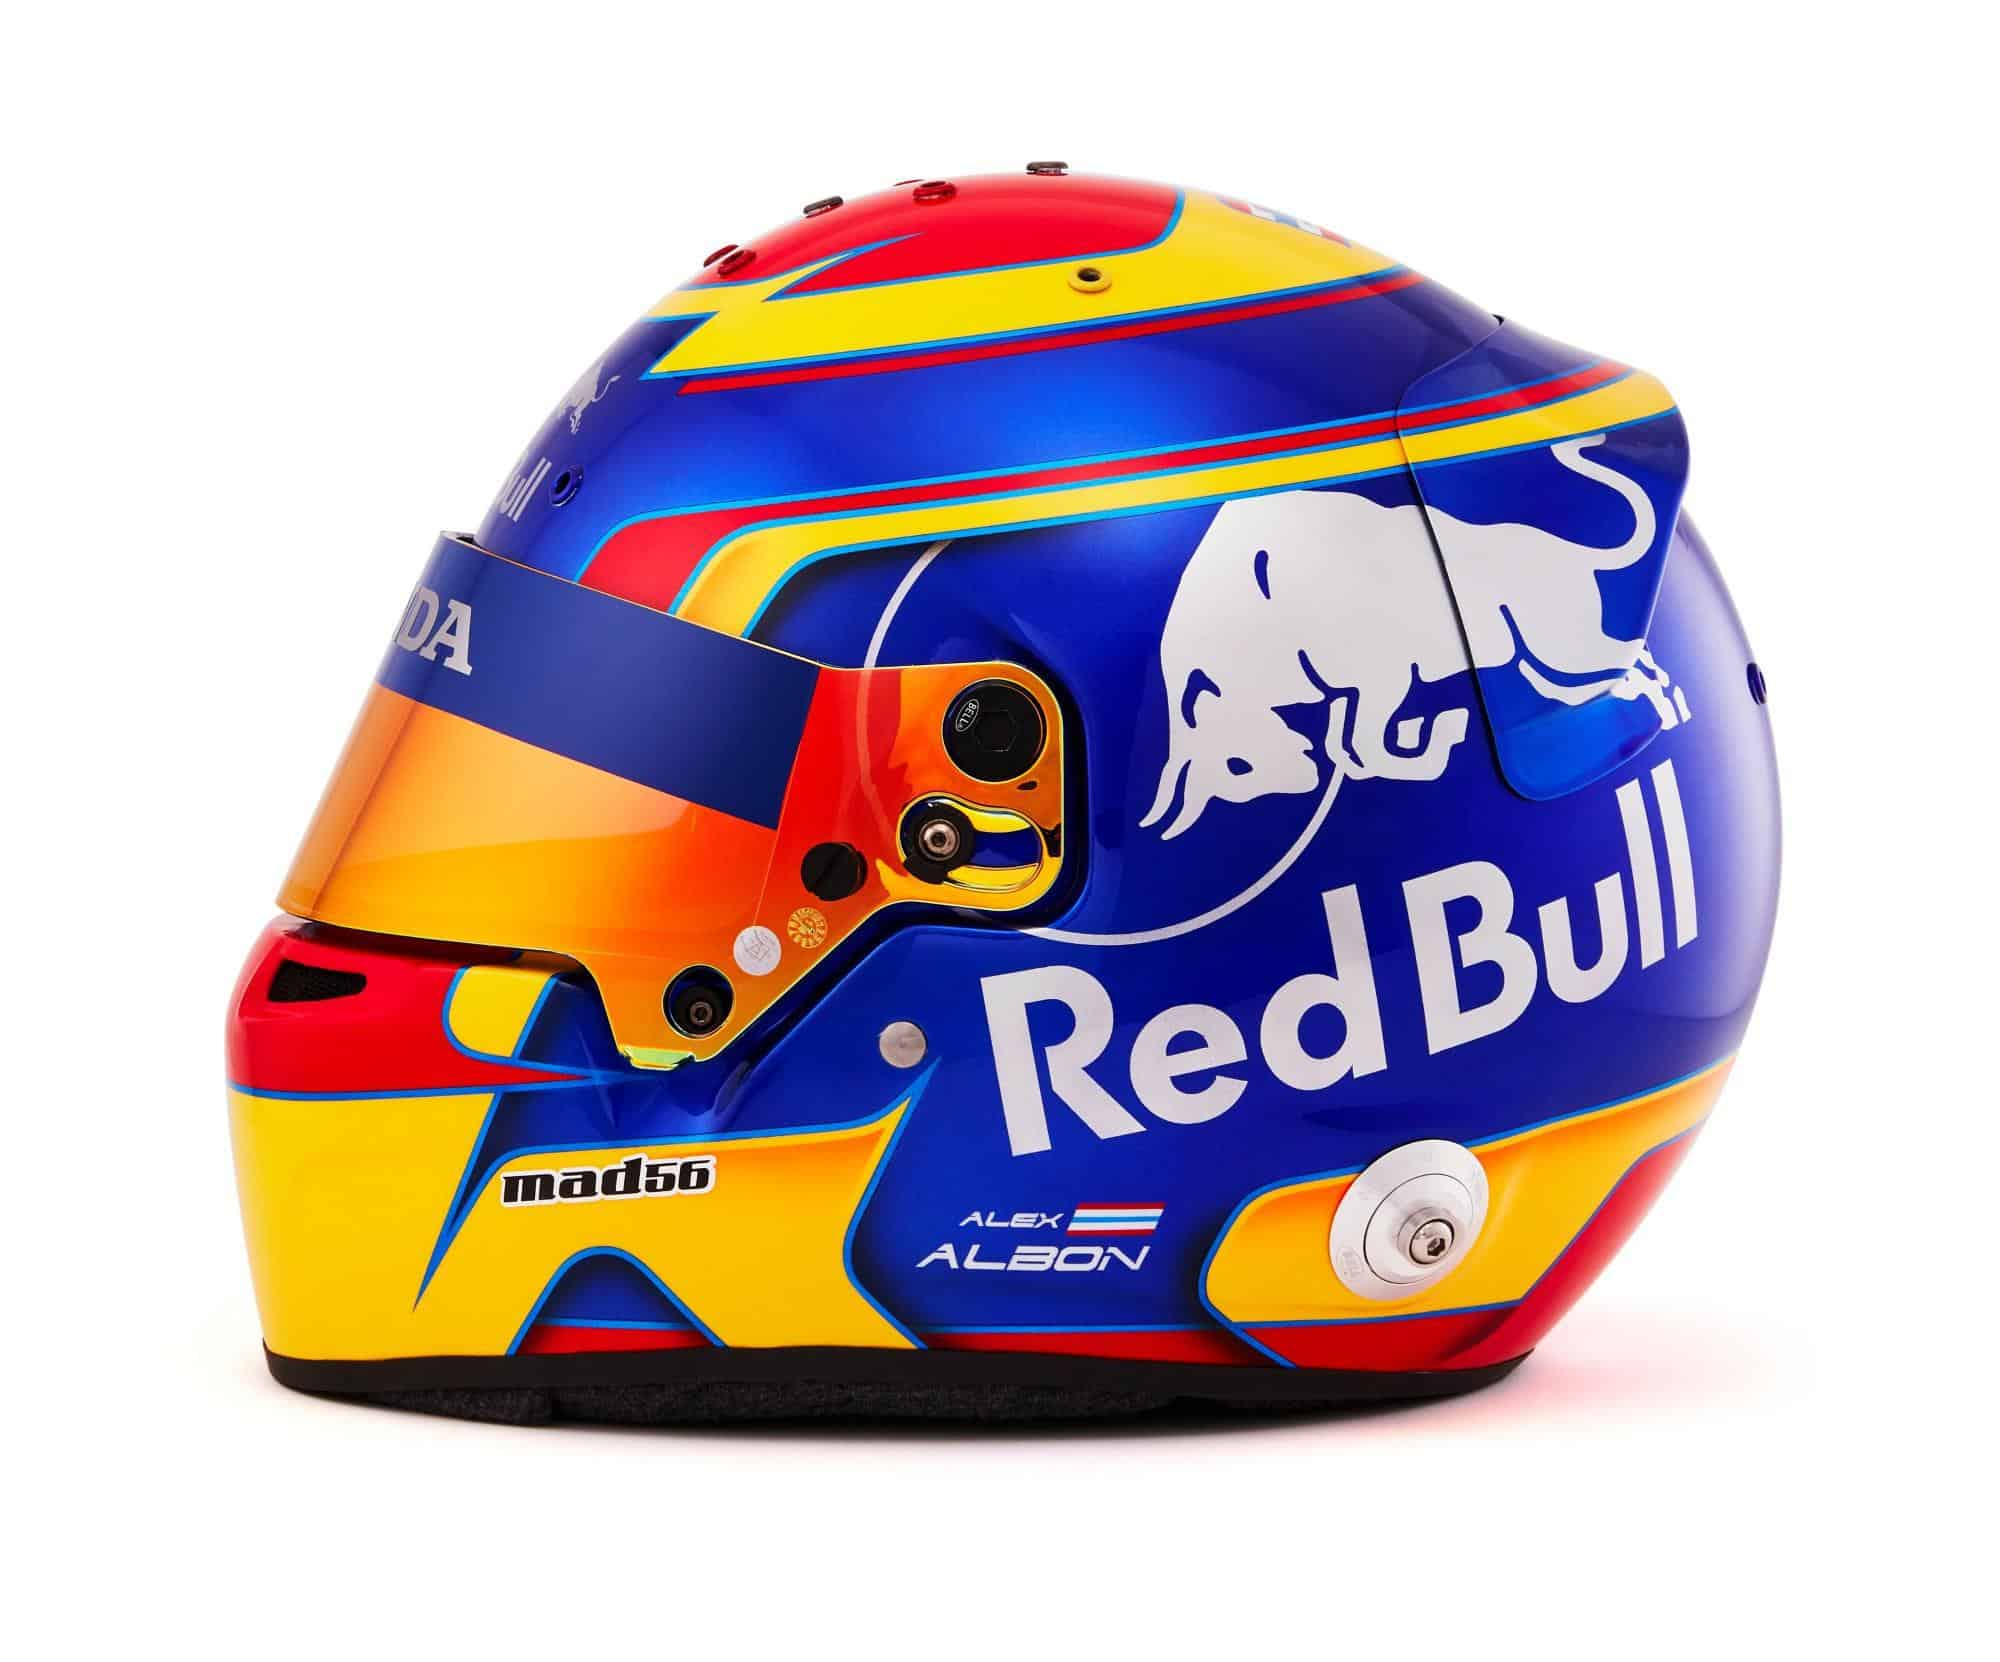 2019 F1 Alexander Albon helmet Toro Rosso Honda left side Photo Red Bull Edited by MAXF1net